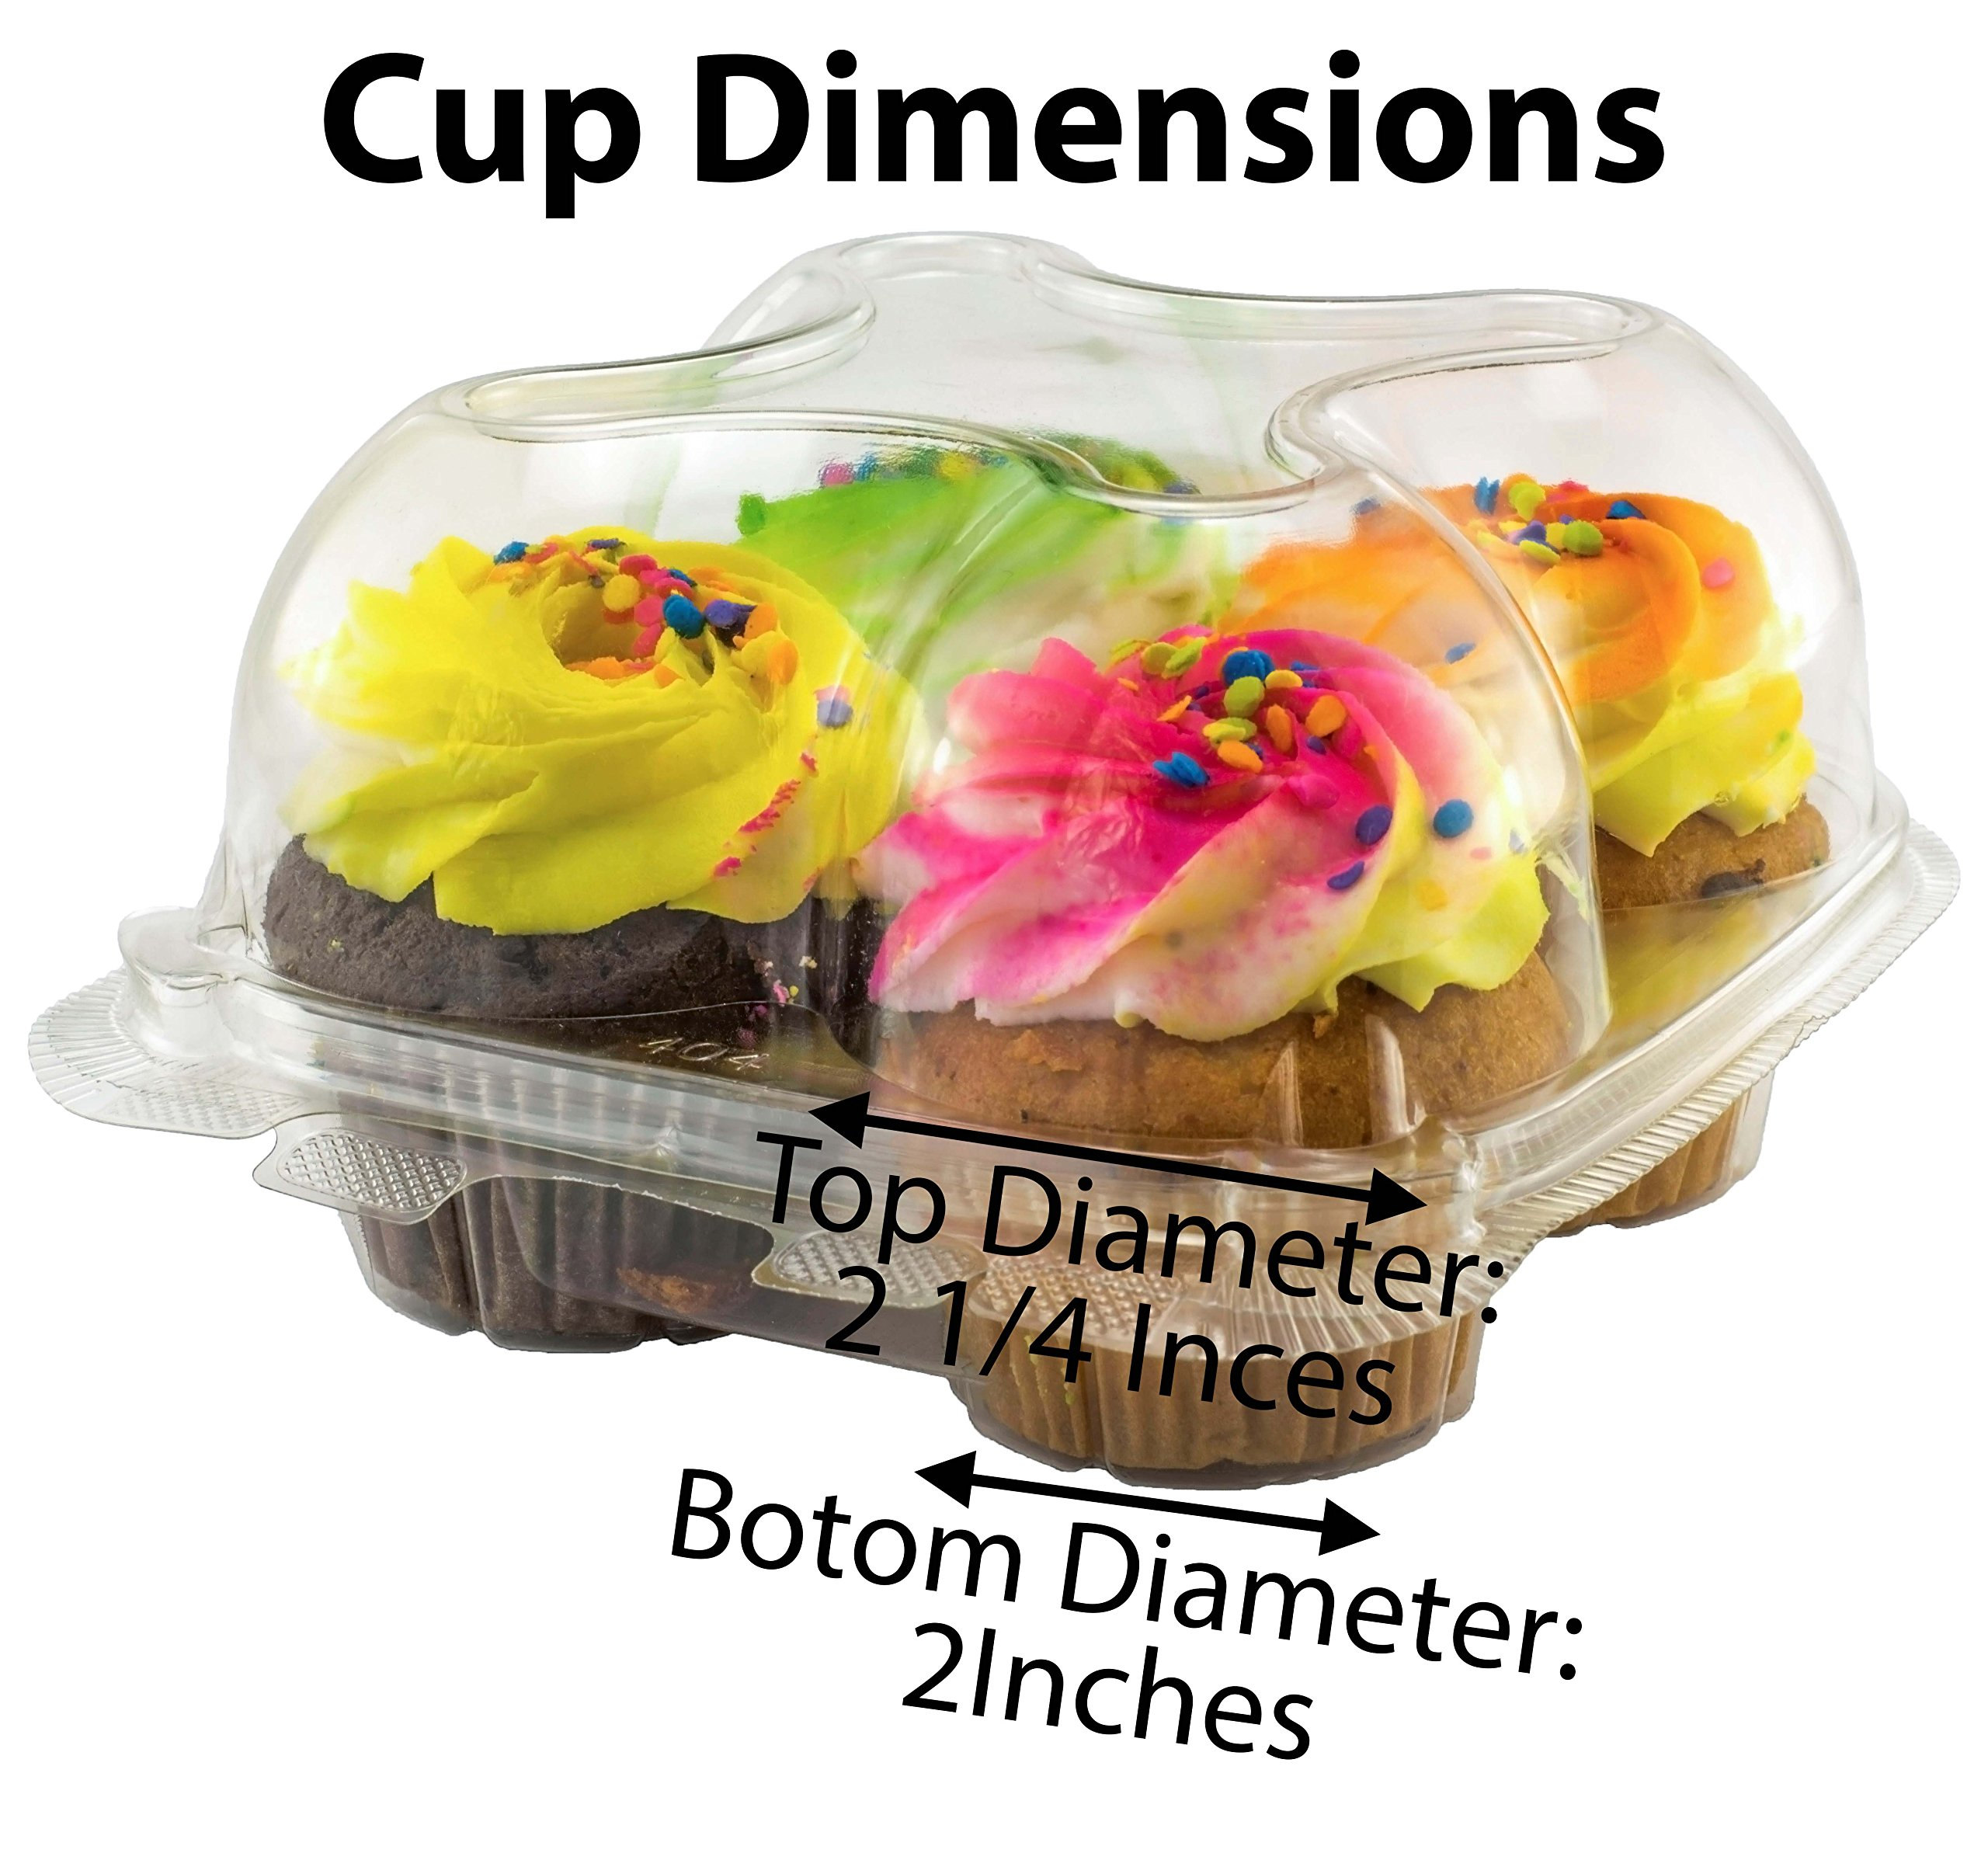 Katgely Cupcake Boxes Cupcake Containers 4 Pack Cupcake, Set of 10 by katgely (Image #2)